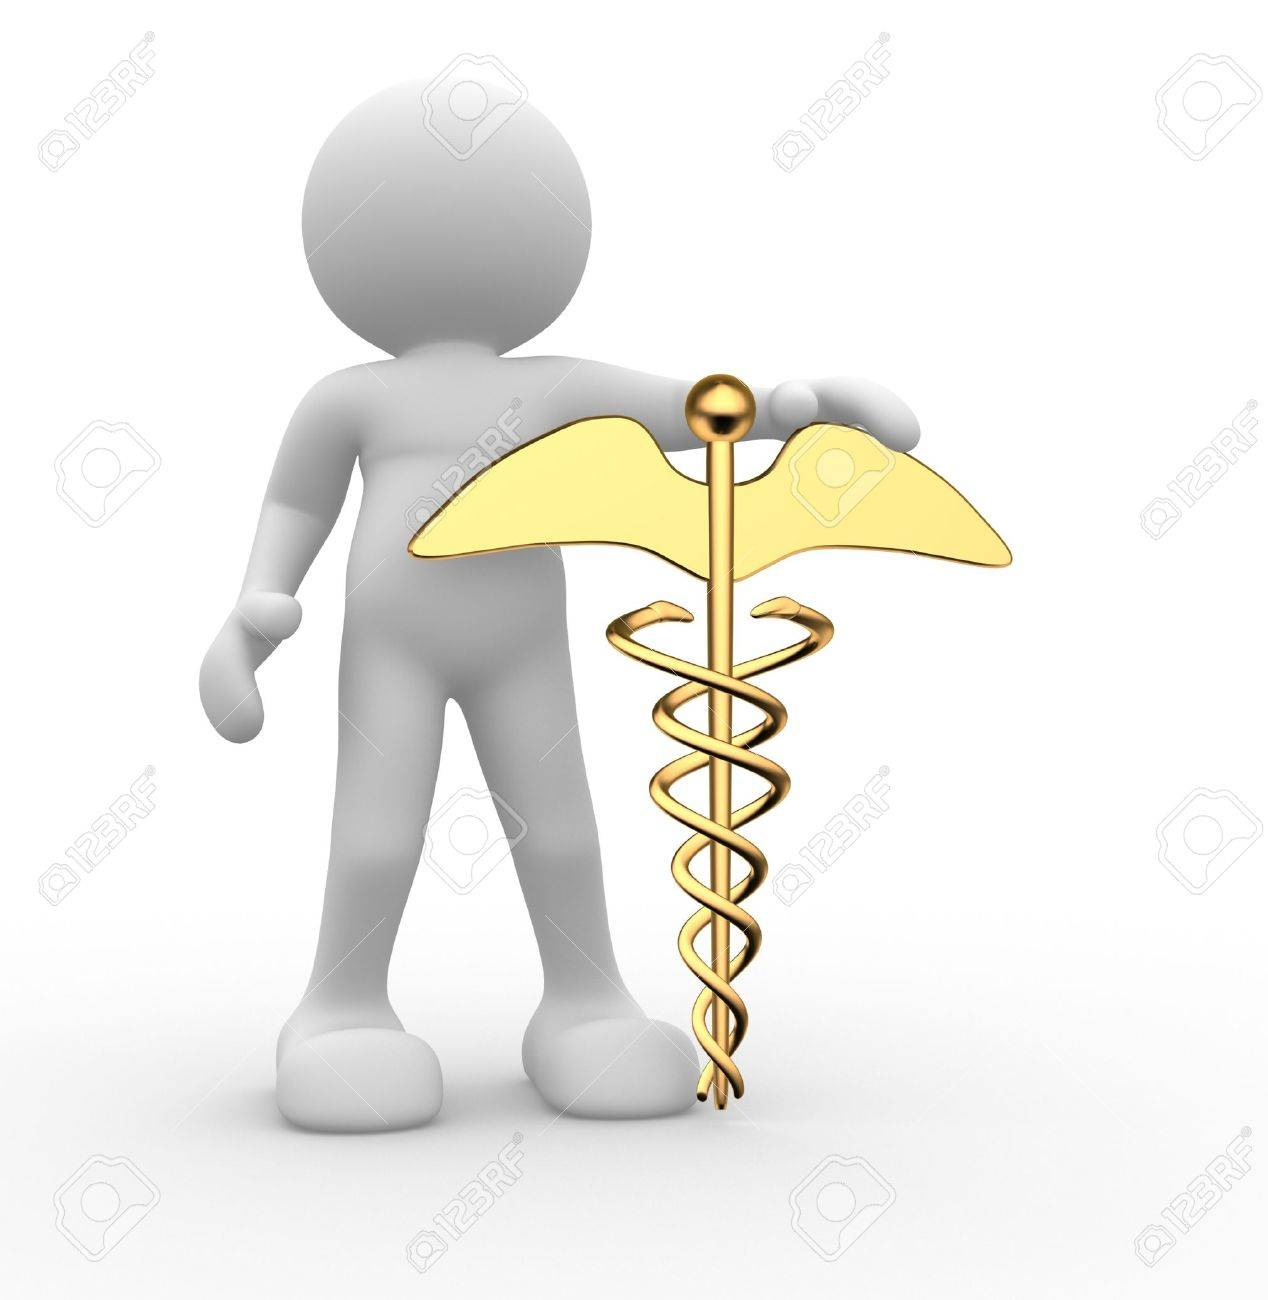 3d people - human character , person with golden symbol of caduceus. 3d render Stock Photo - 14800709